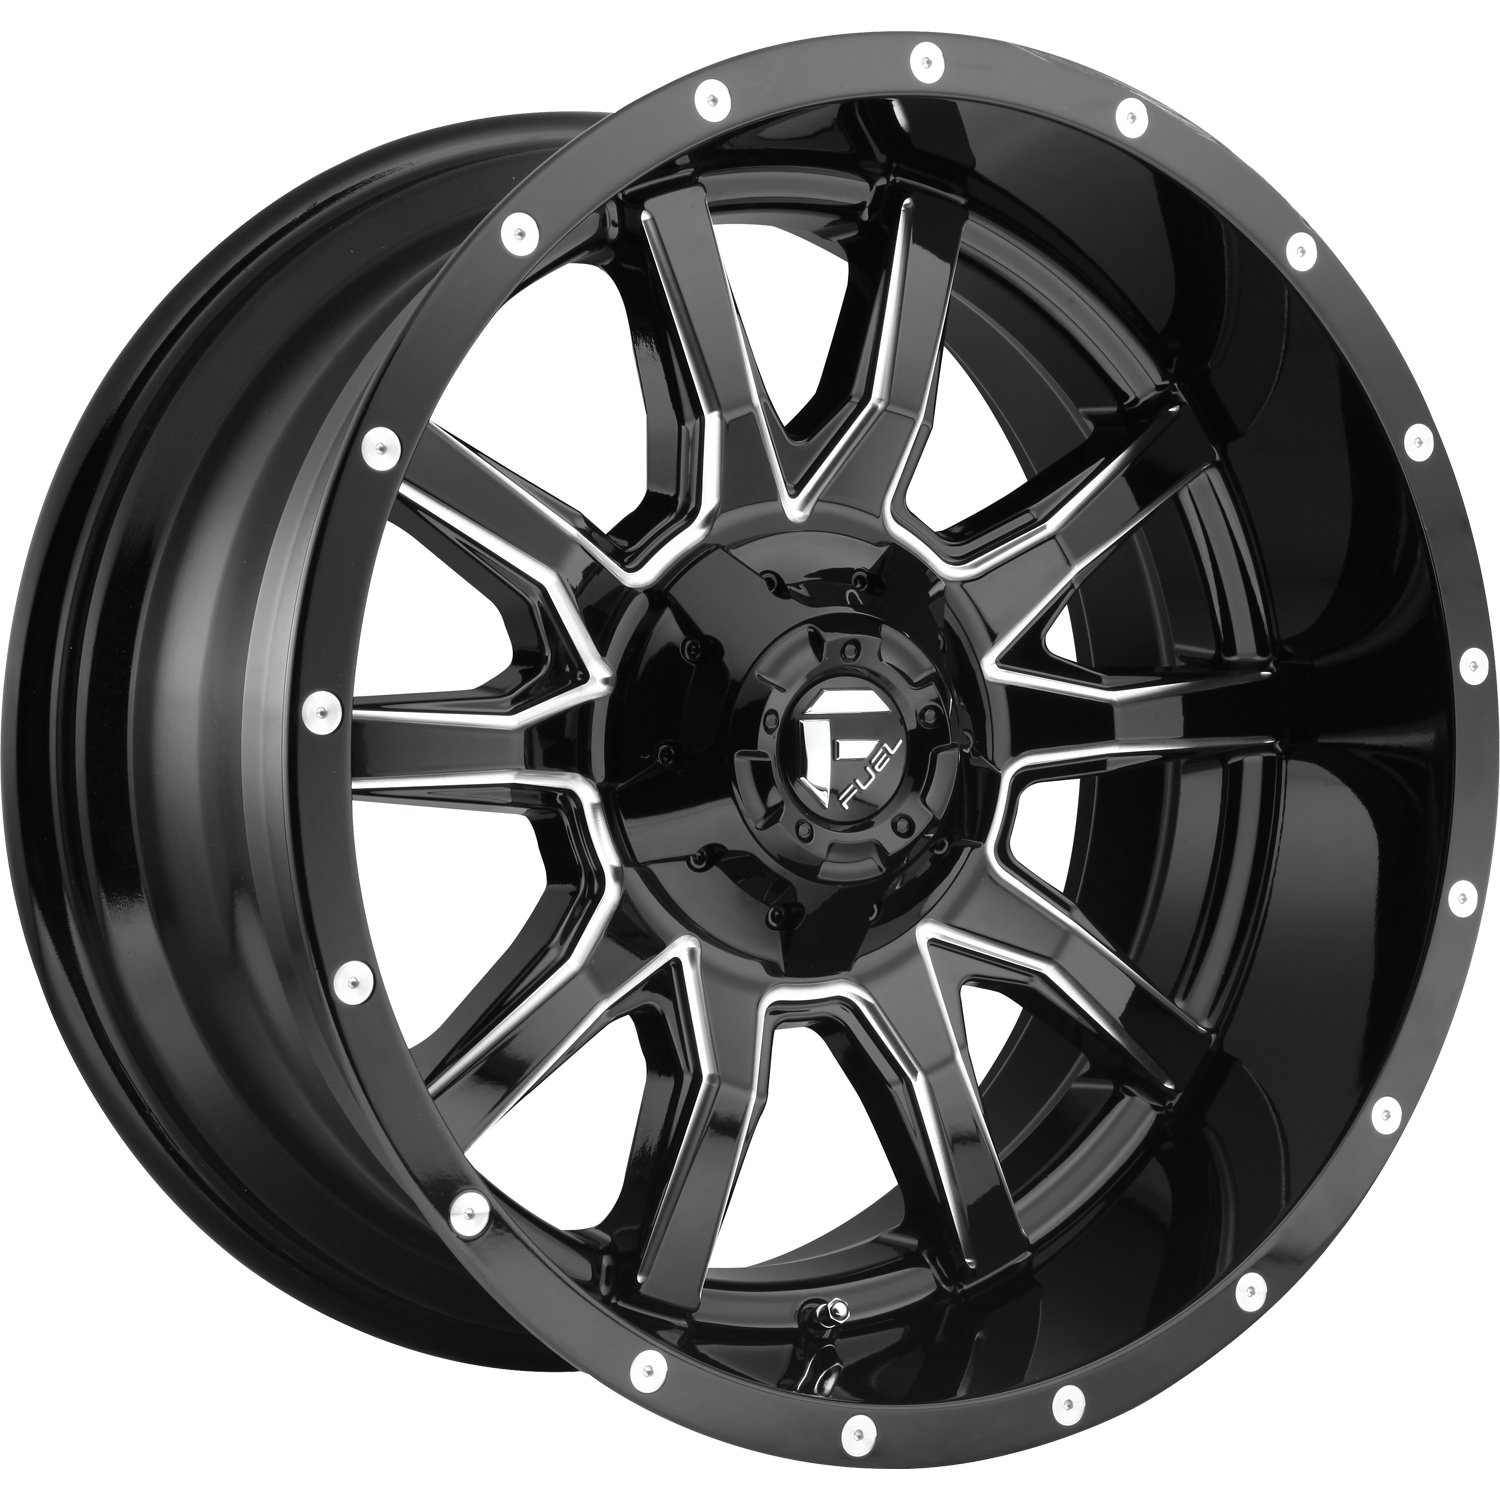 Fuel Vandal Gloss Black with Milled Spoke Edges 18x9 1